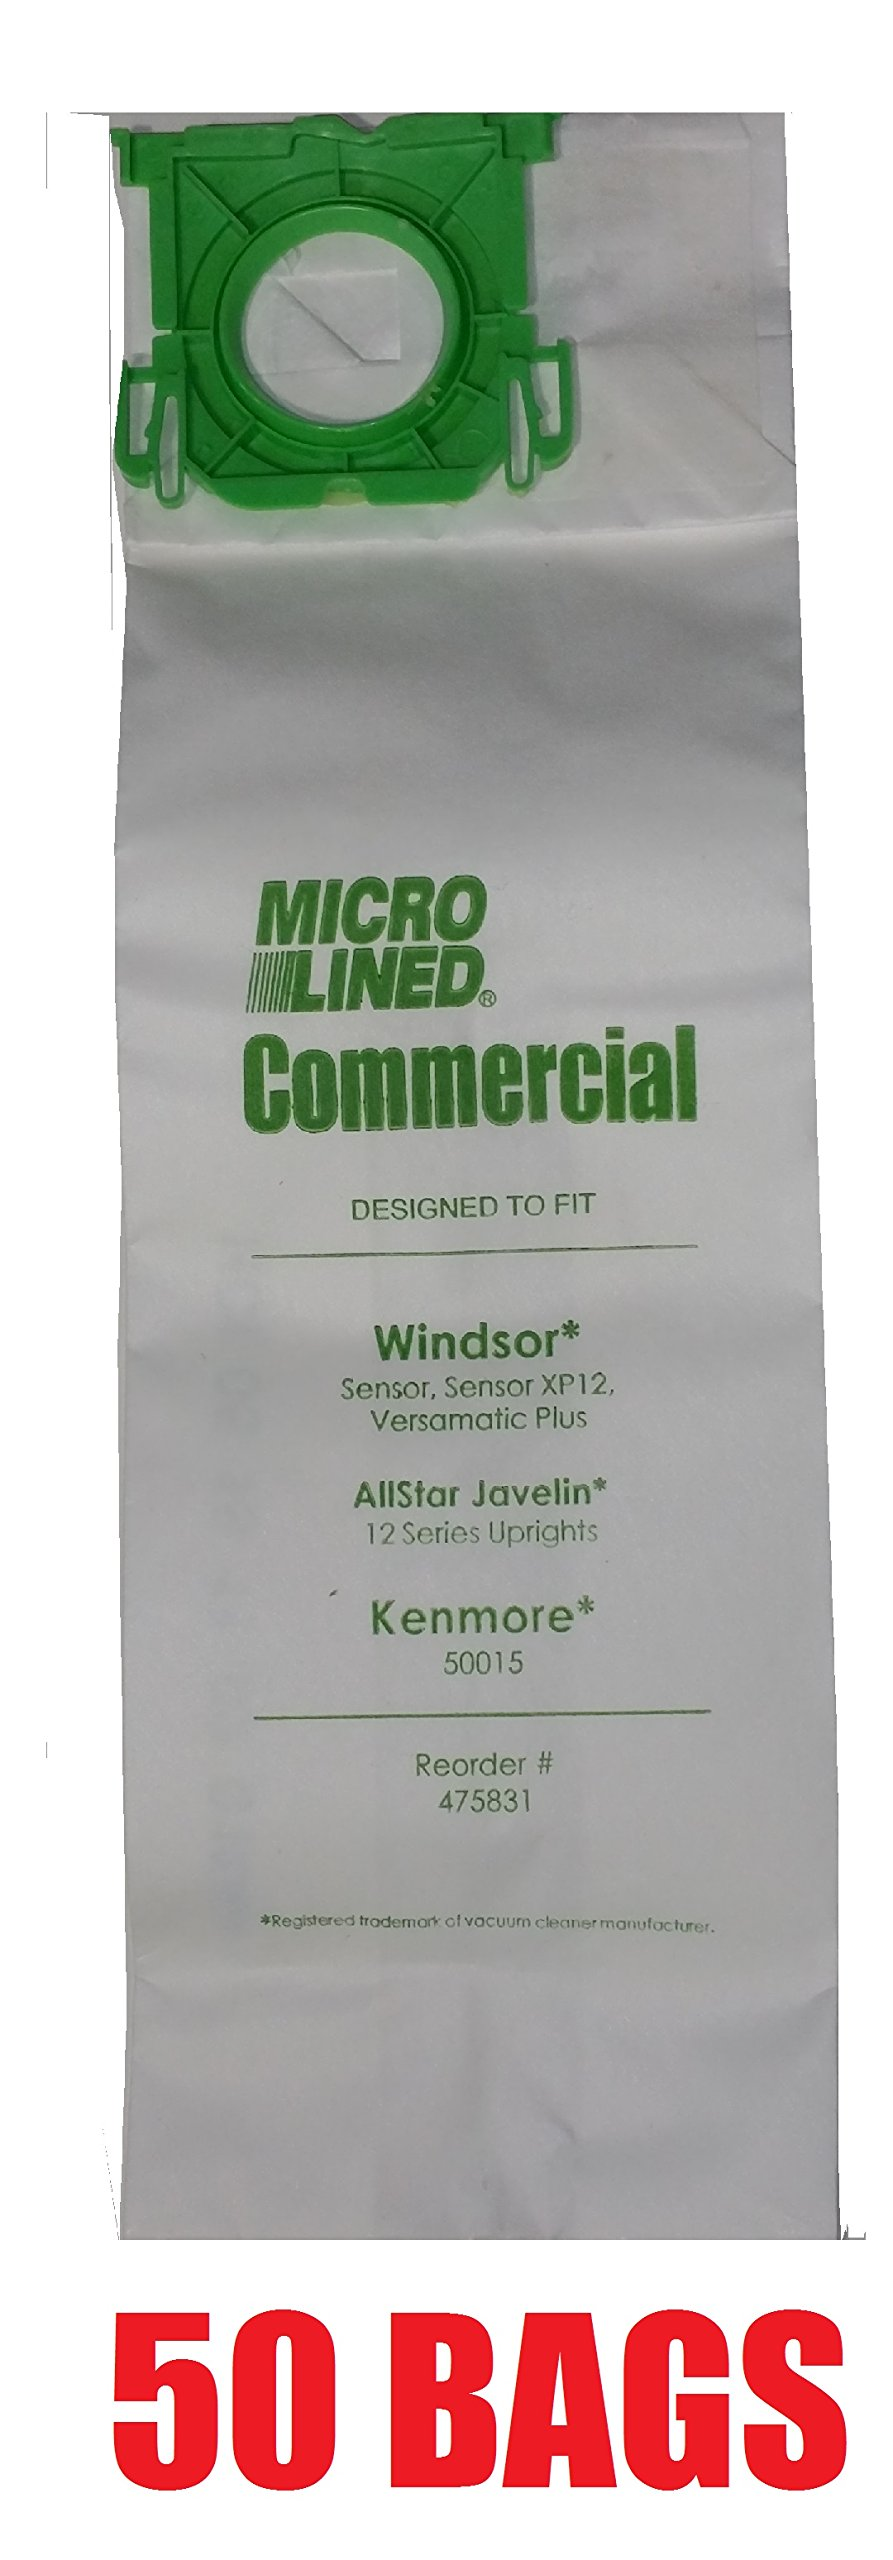 50 Sebo, Windsor Sensor Micro-Lined Commercial Upright Vacuum Bags, Fits 5093AM, 5300. 50 Pack. by Micro Lined DVC